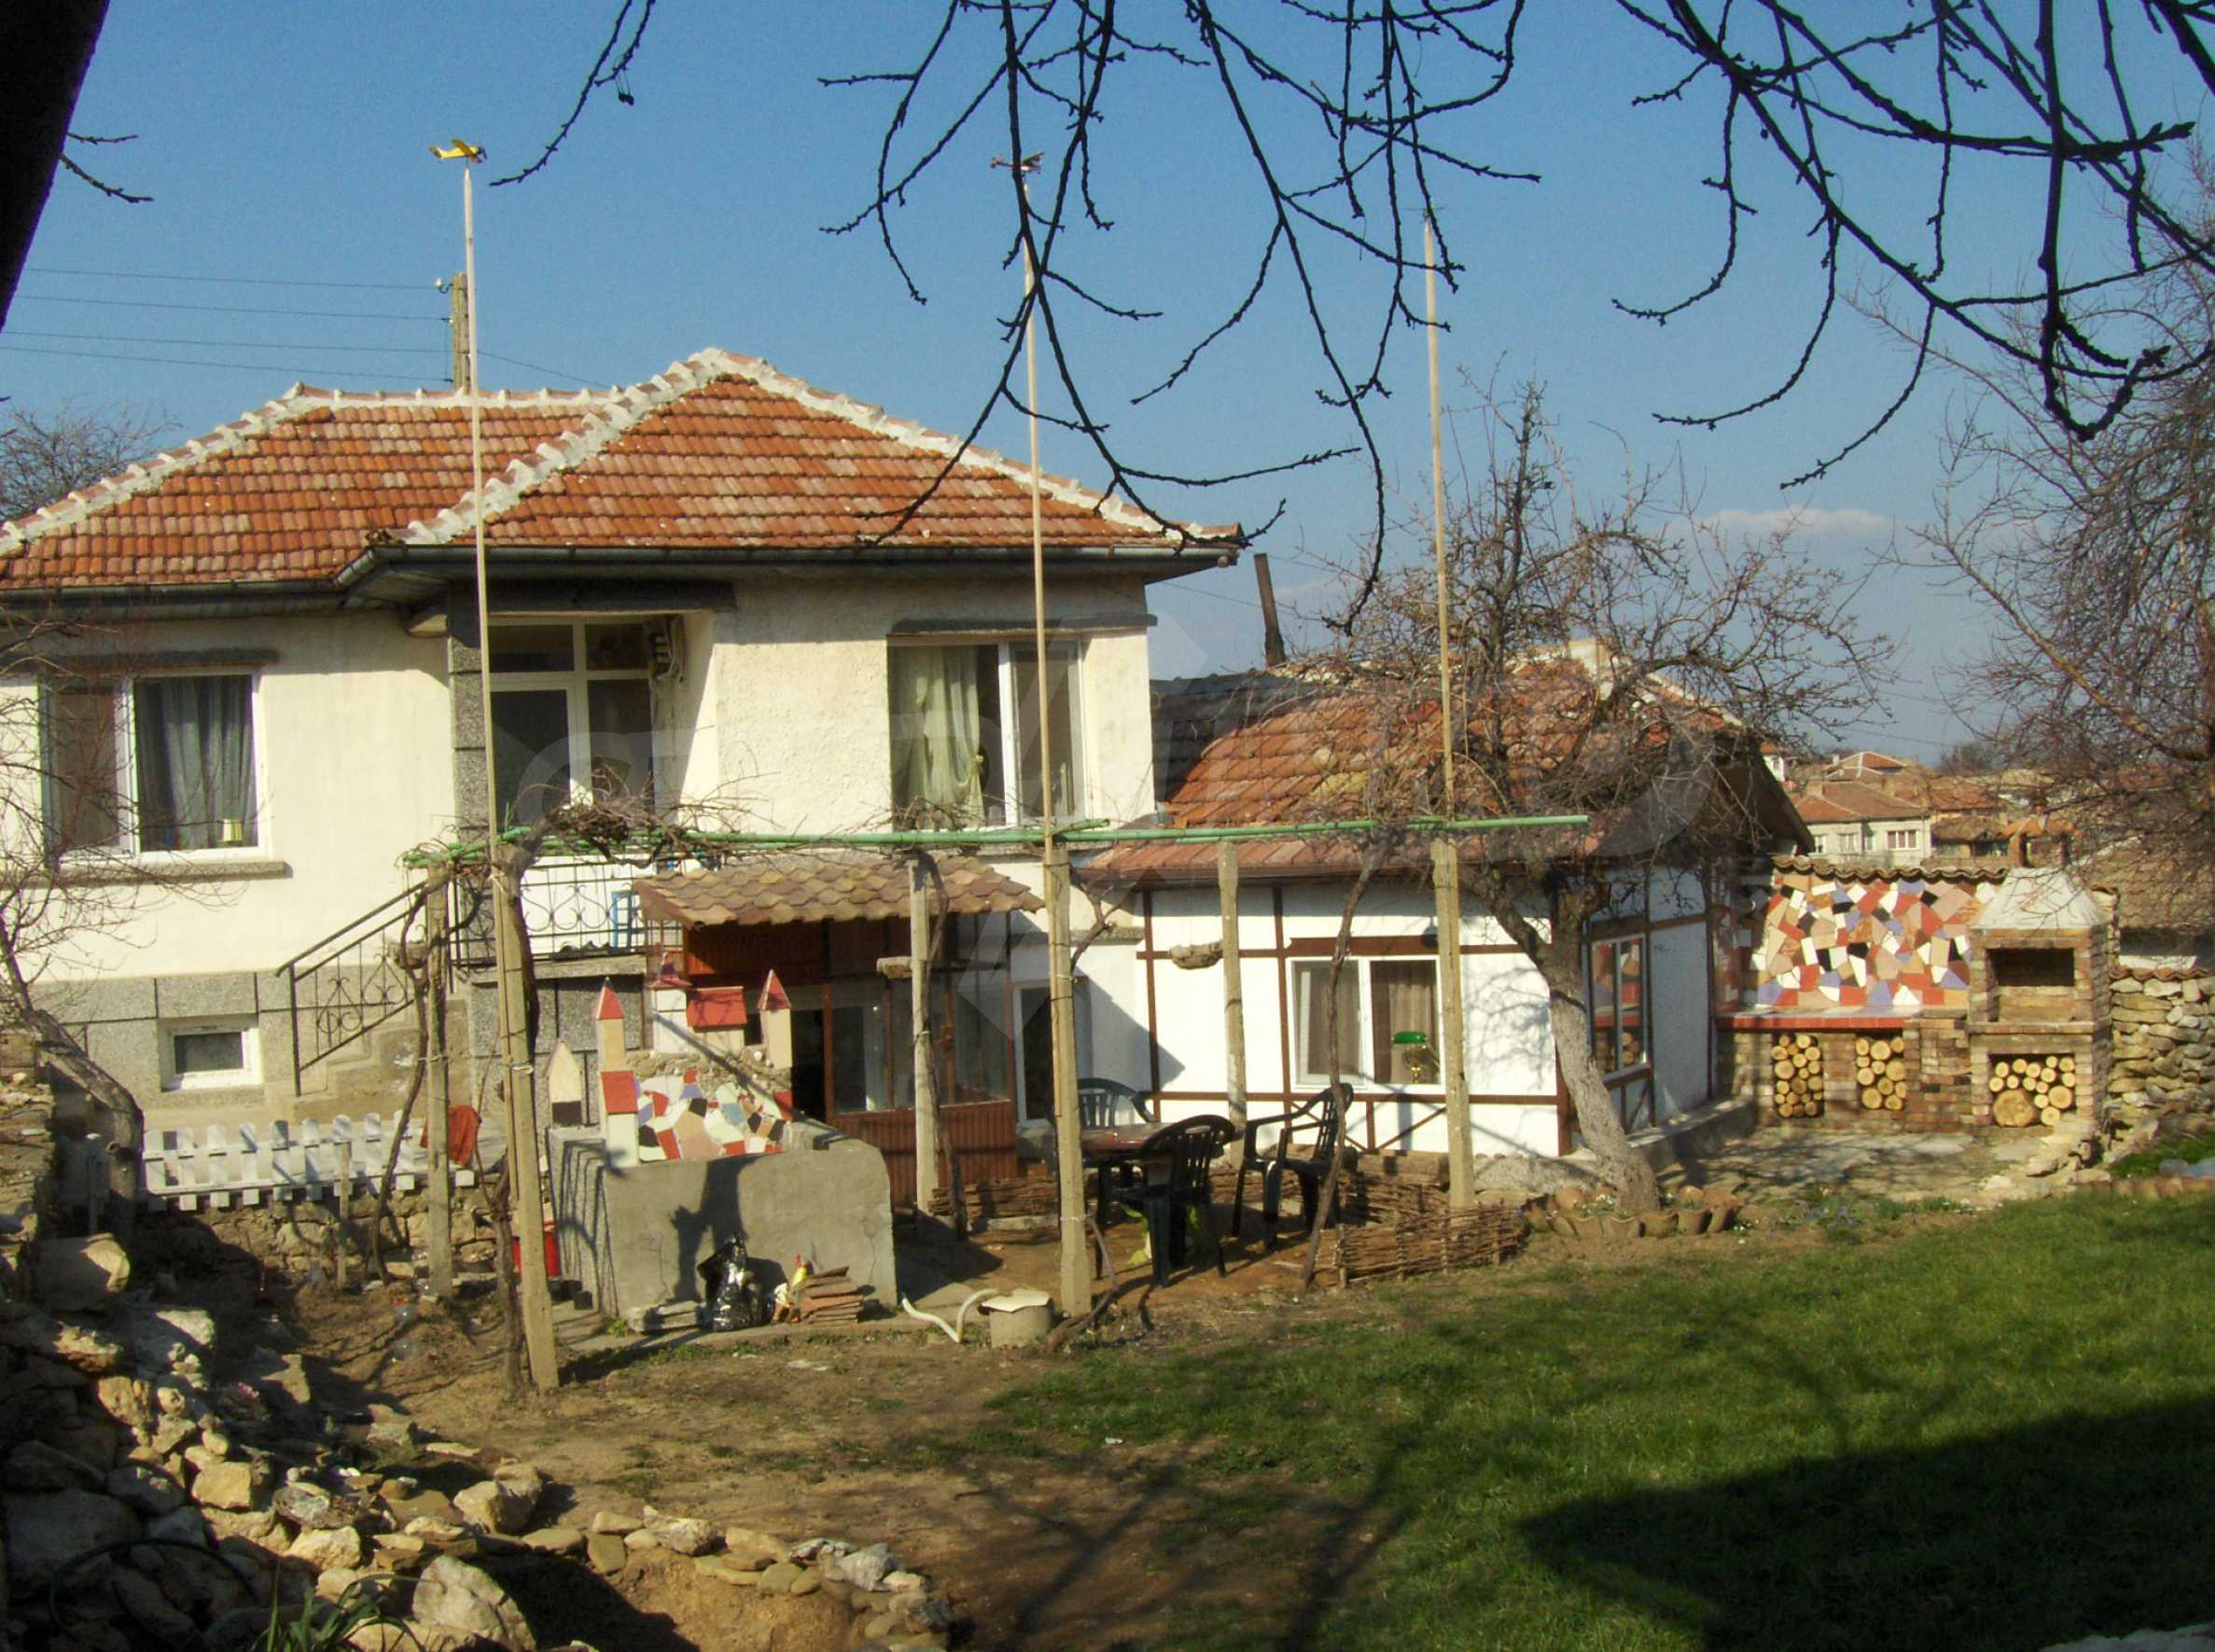 Fully renovated and furnished house with lovely views close to Veliko Tarnovo